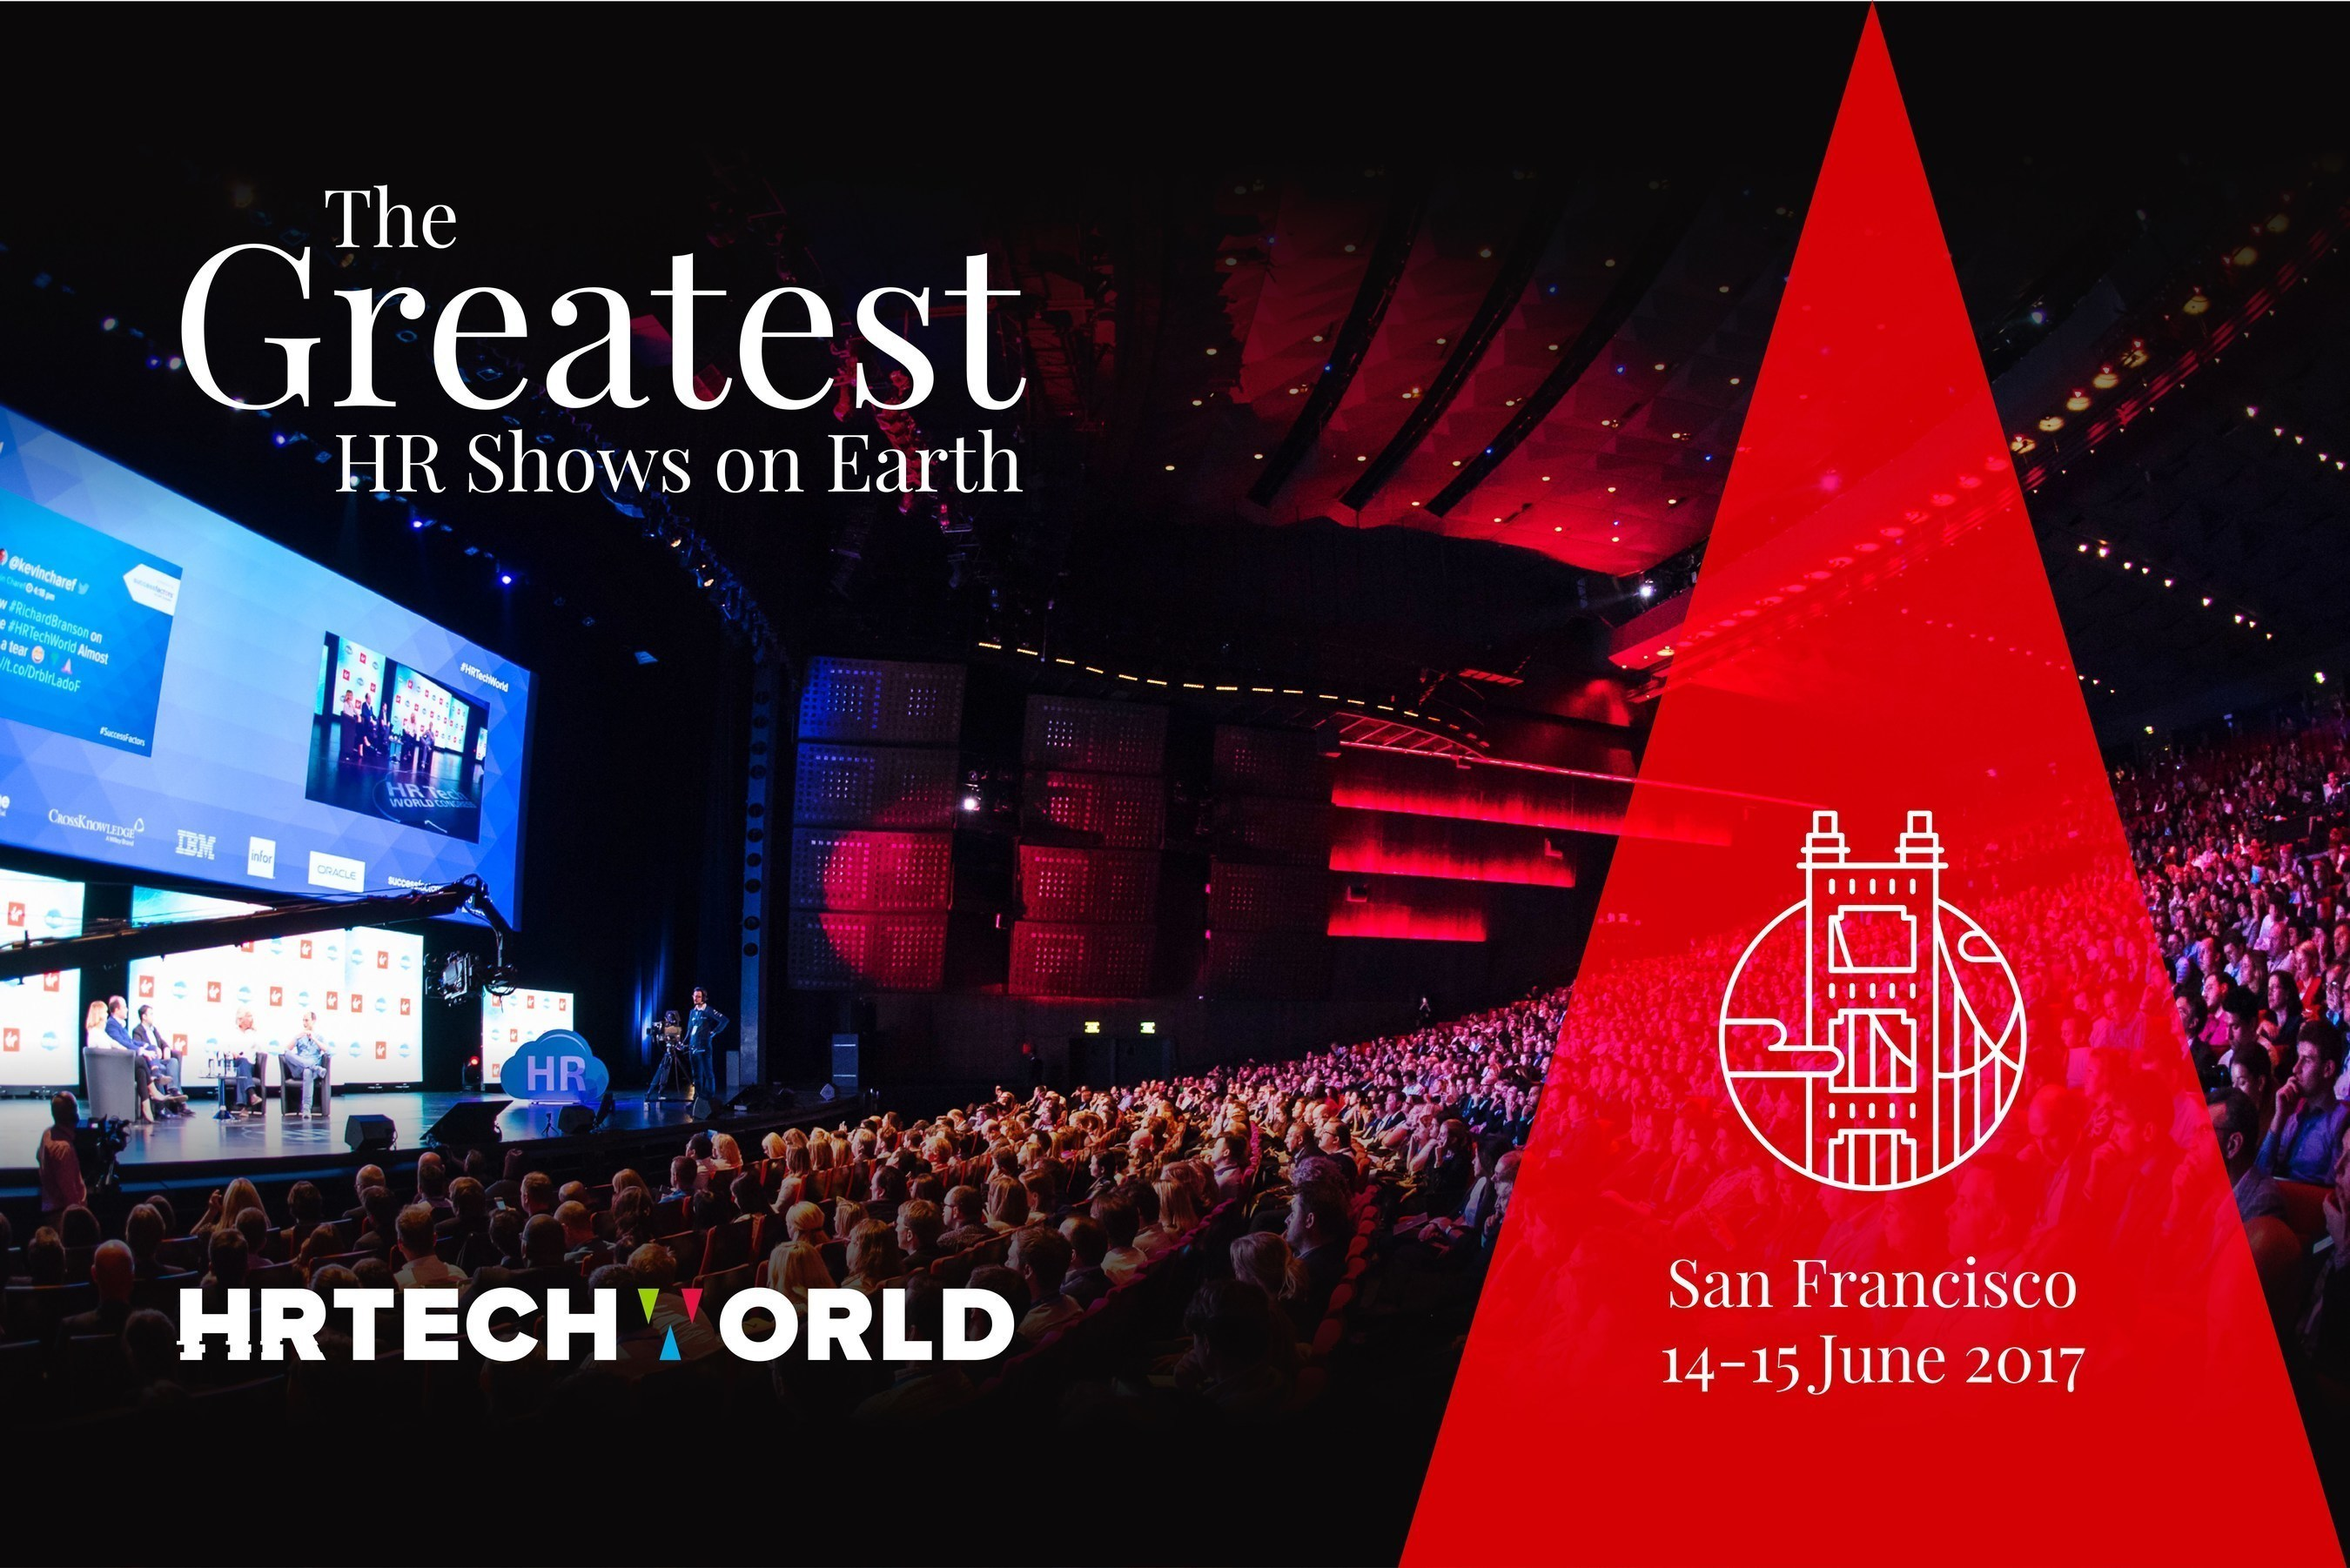 HR Tech World - the fastest growing show on the Future of Work in the world - opens in San Francisco on June 14th & 15th 2017 at Fort Mason.